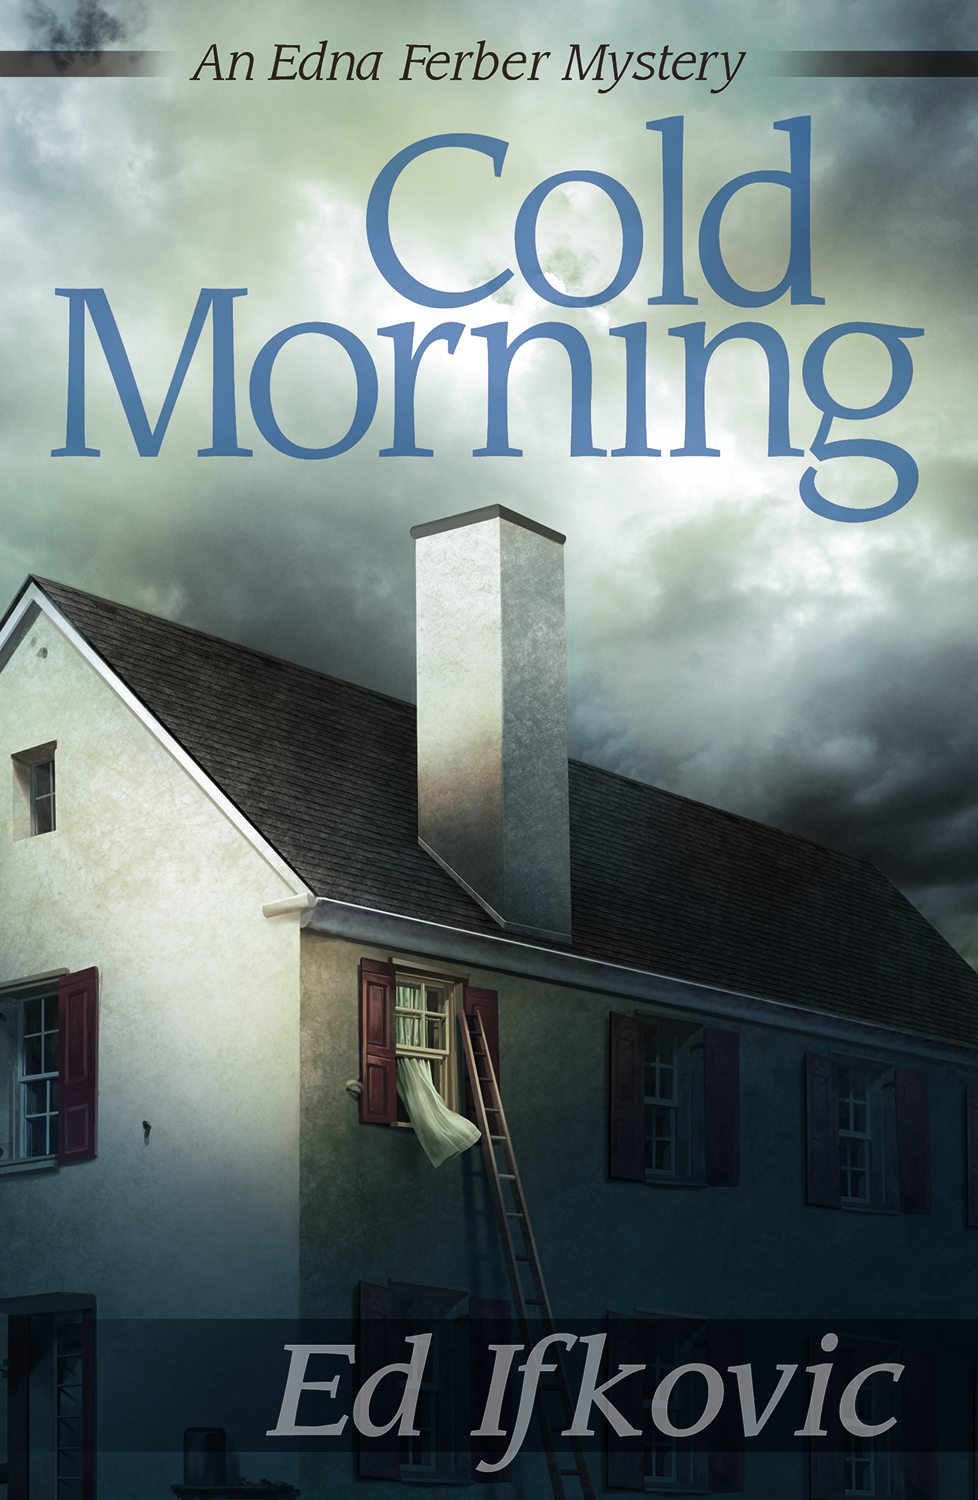 Cold Morning: An Edna Ferber Mystery (Edna Ferber Mysteries)